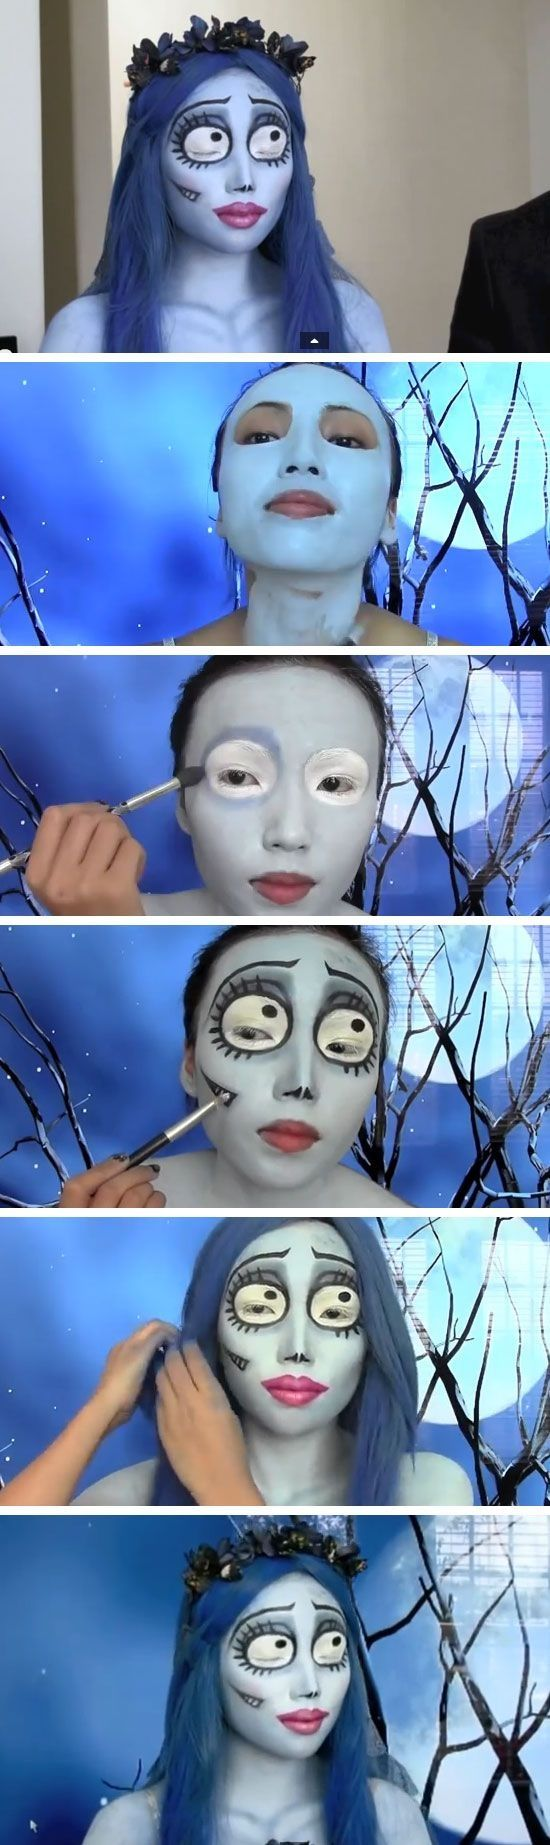 Would you like a quick makeup tip? Here is a cool one to make up as Sally from Nightmare Before Christmas. Be ready for halloween 2014. #halloweenmakeup